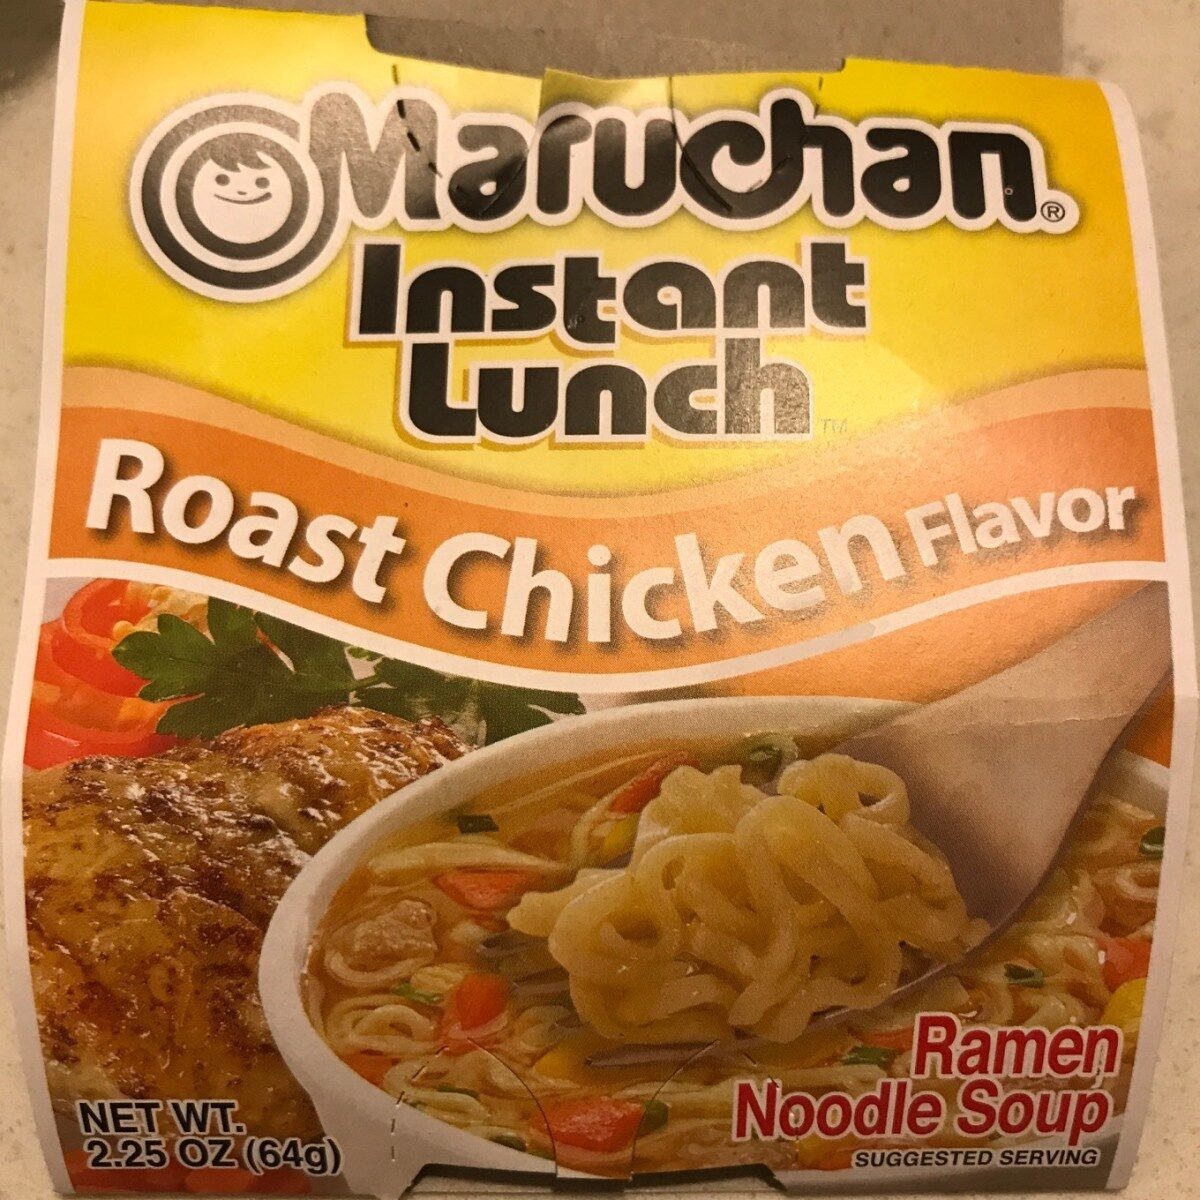 Instant Lunch, Ramen Noodles With Vegetables, Roast Chicken - Product